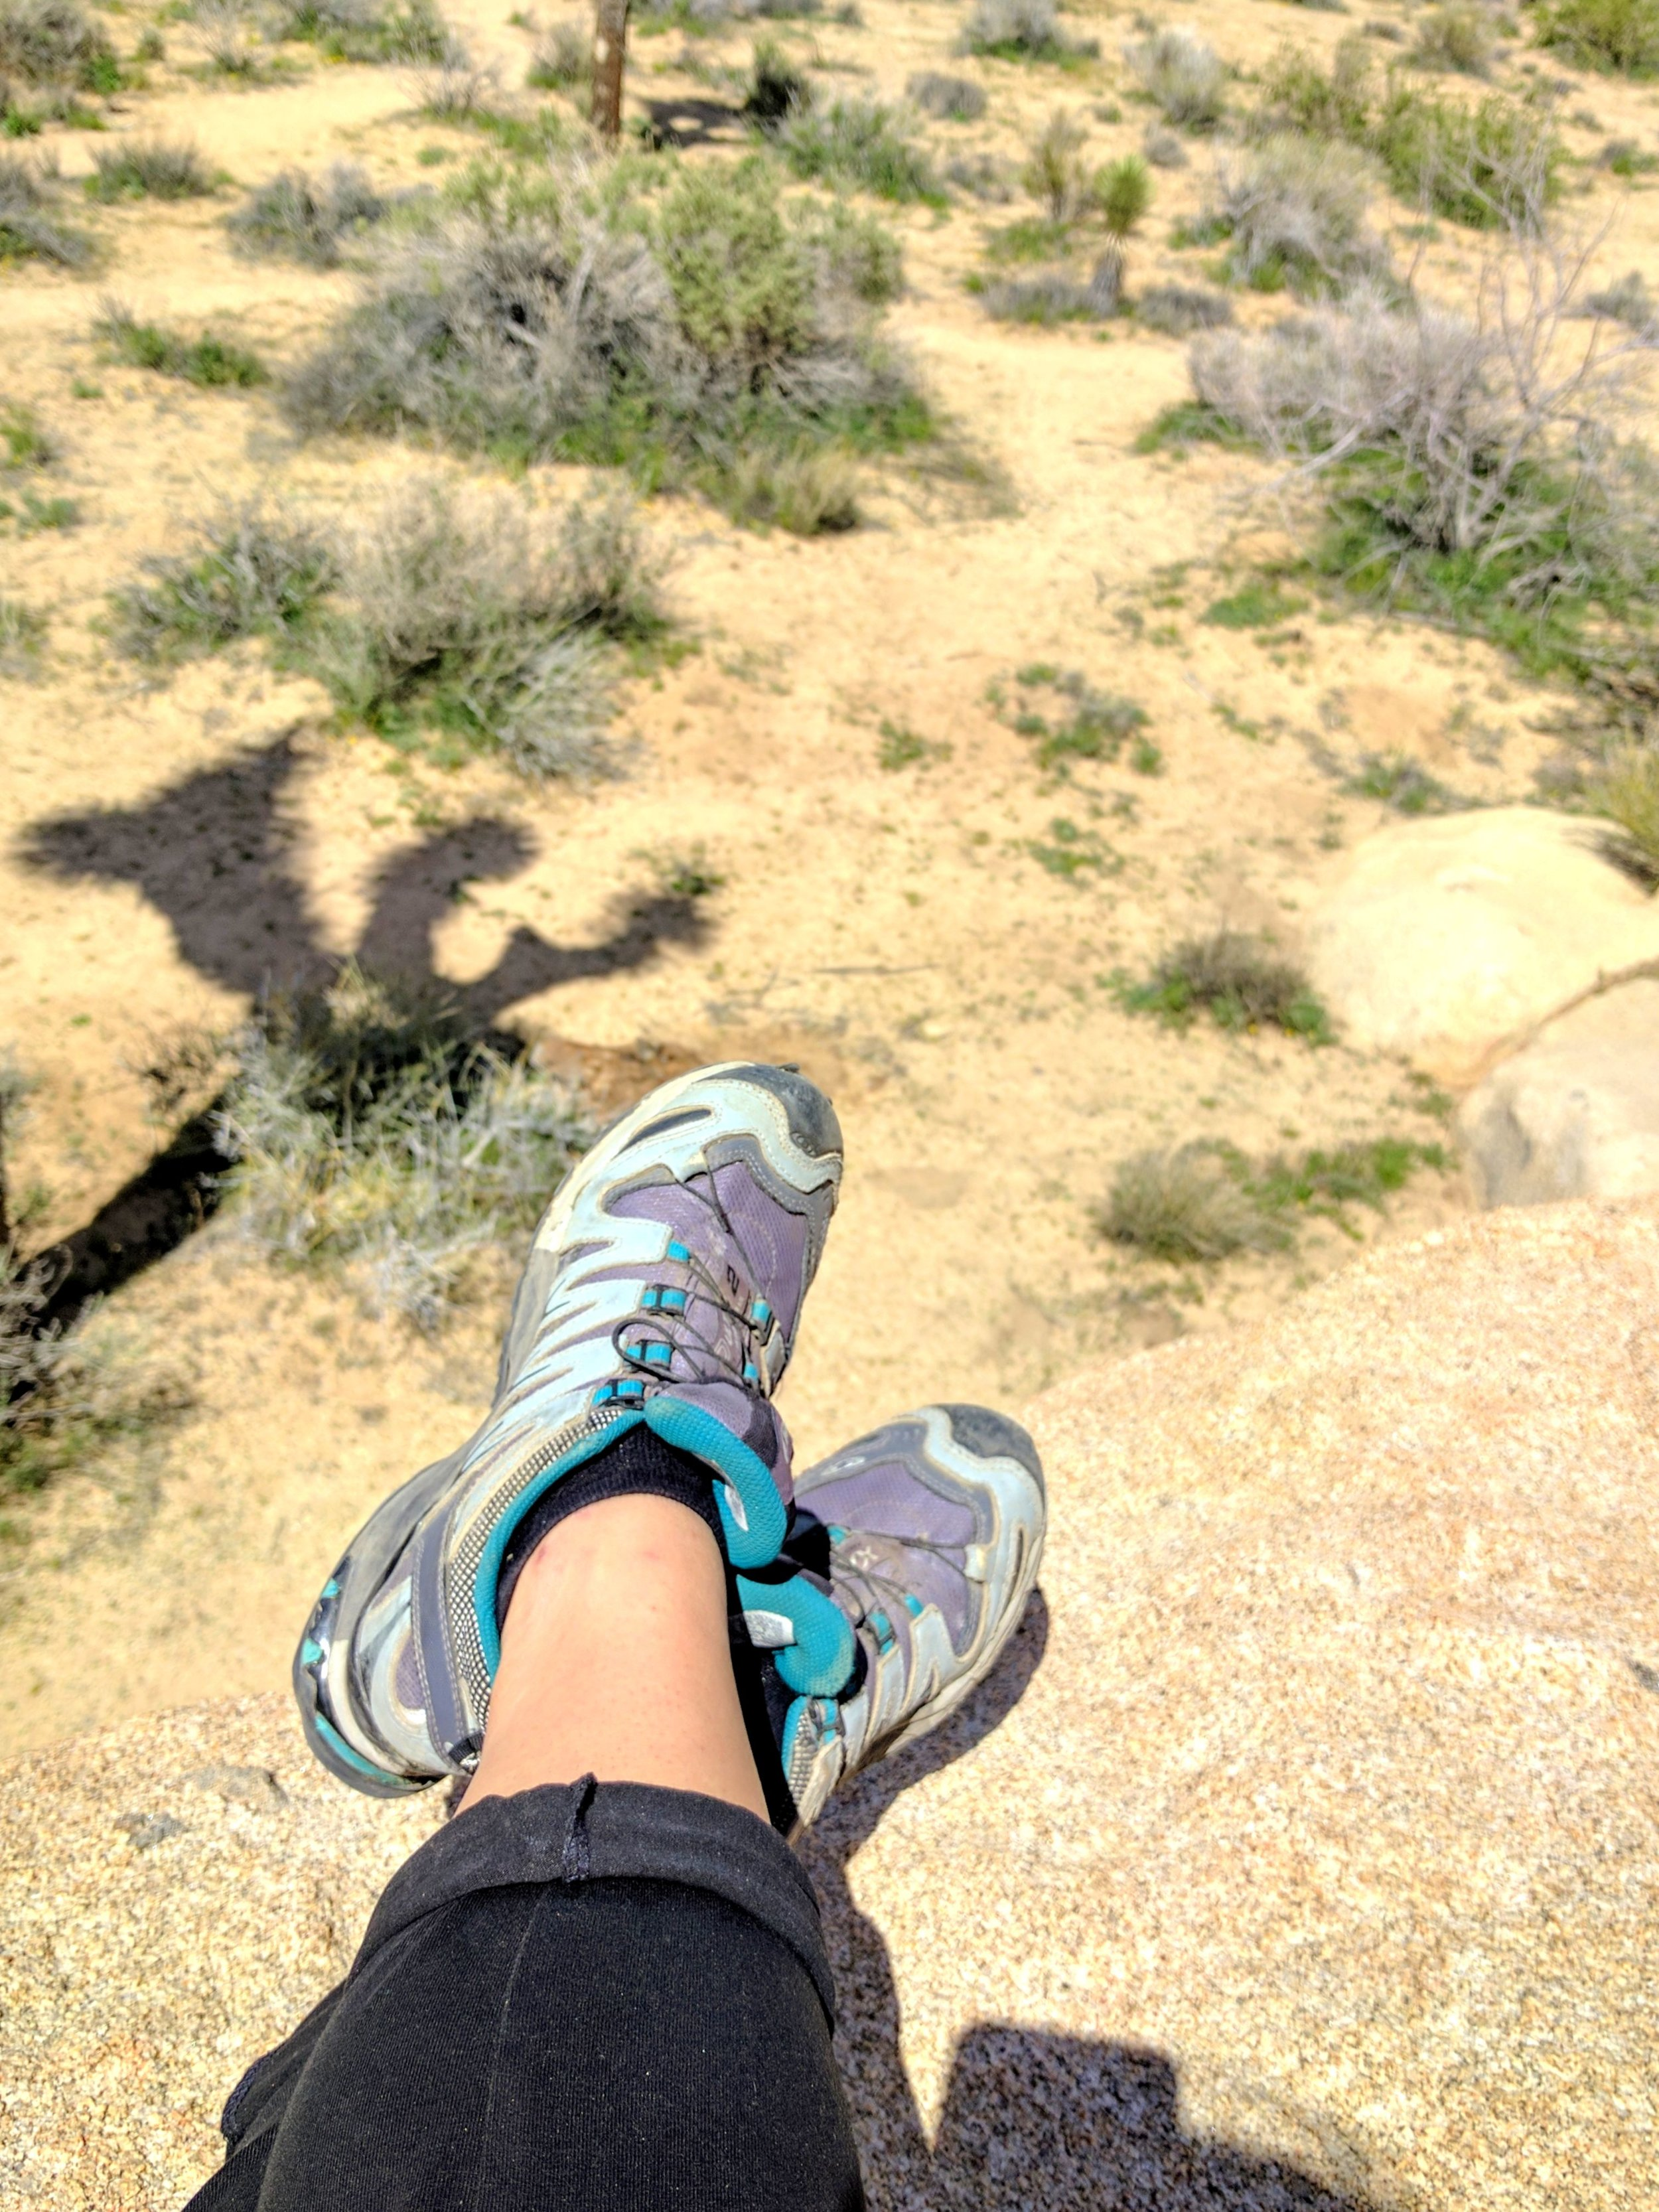 Soloman Hiking Sneakers are my favorite Trip Joshua Tree My First Camping Trip